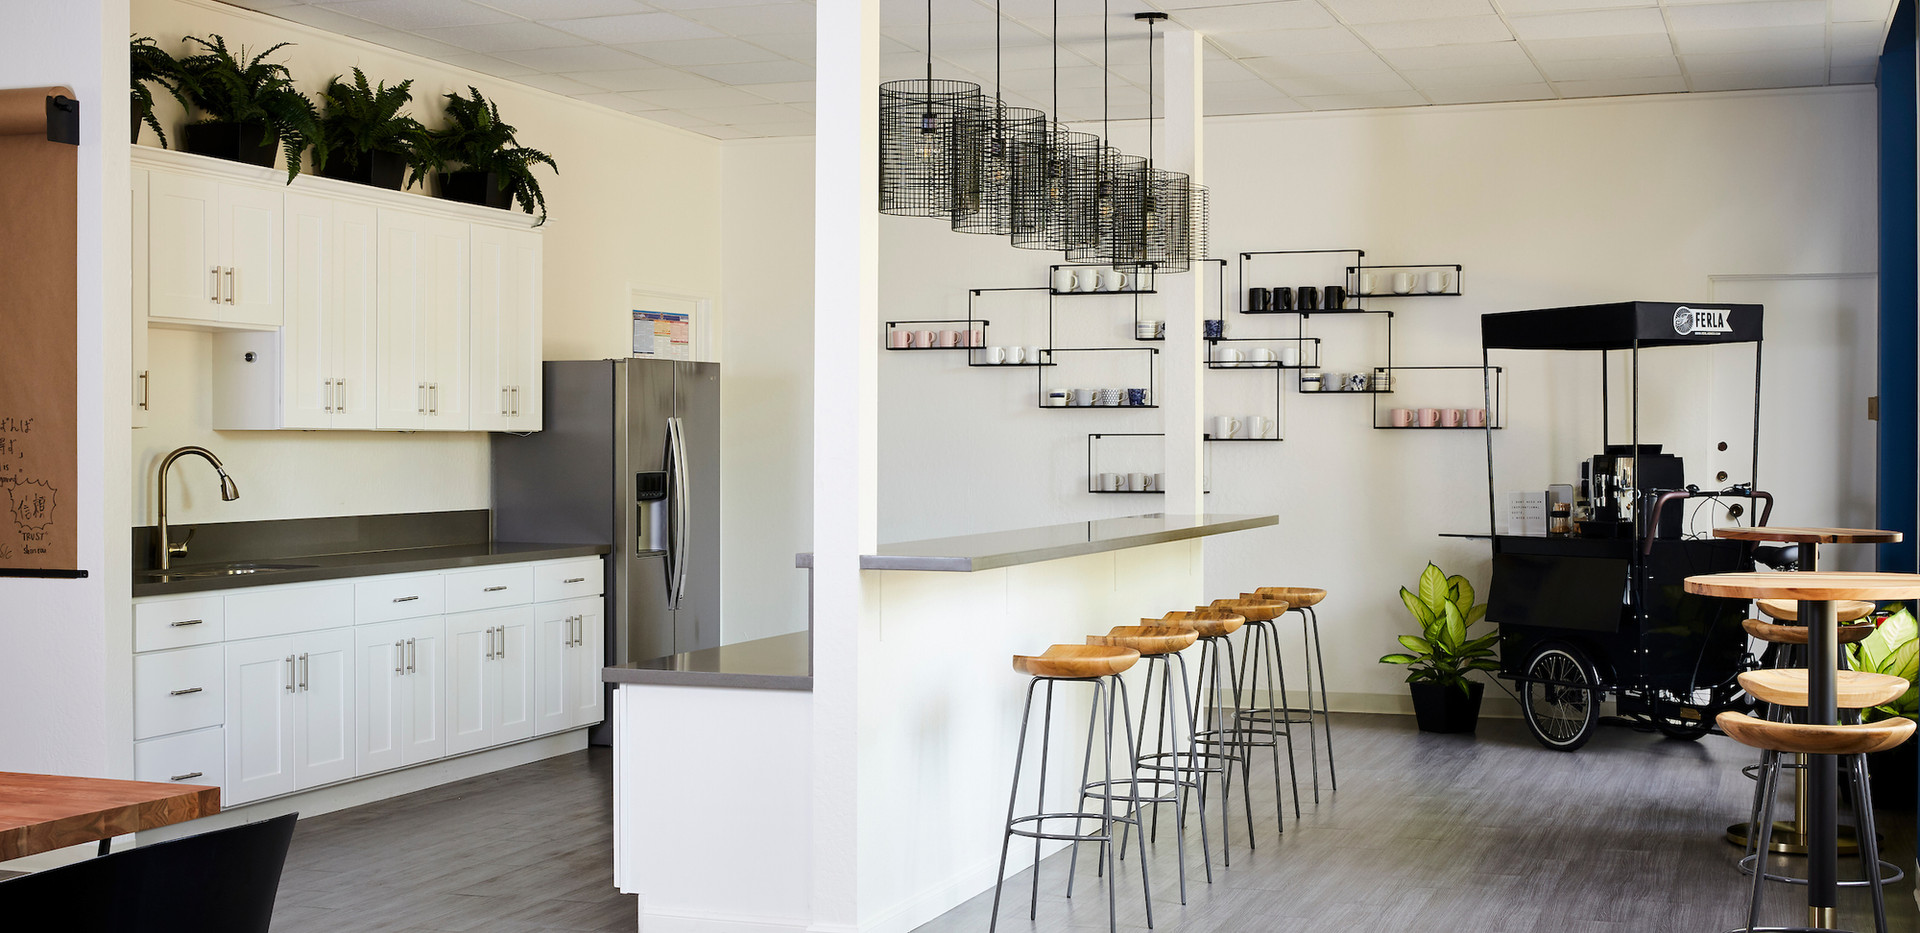 Palo Alto Kitchen 1.jpg